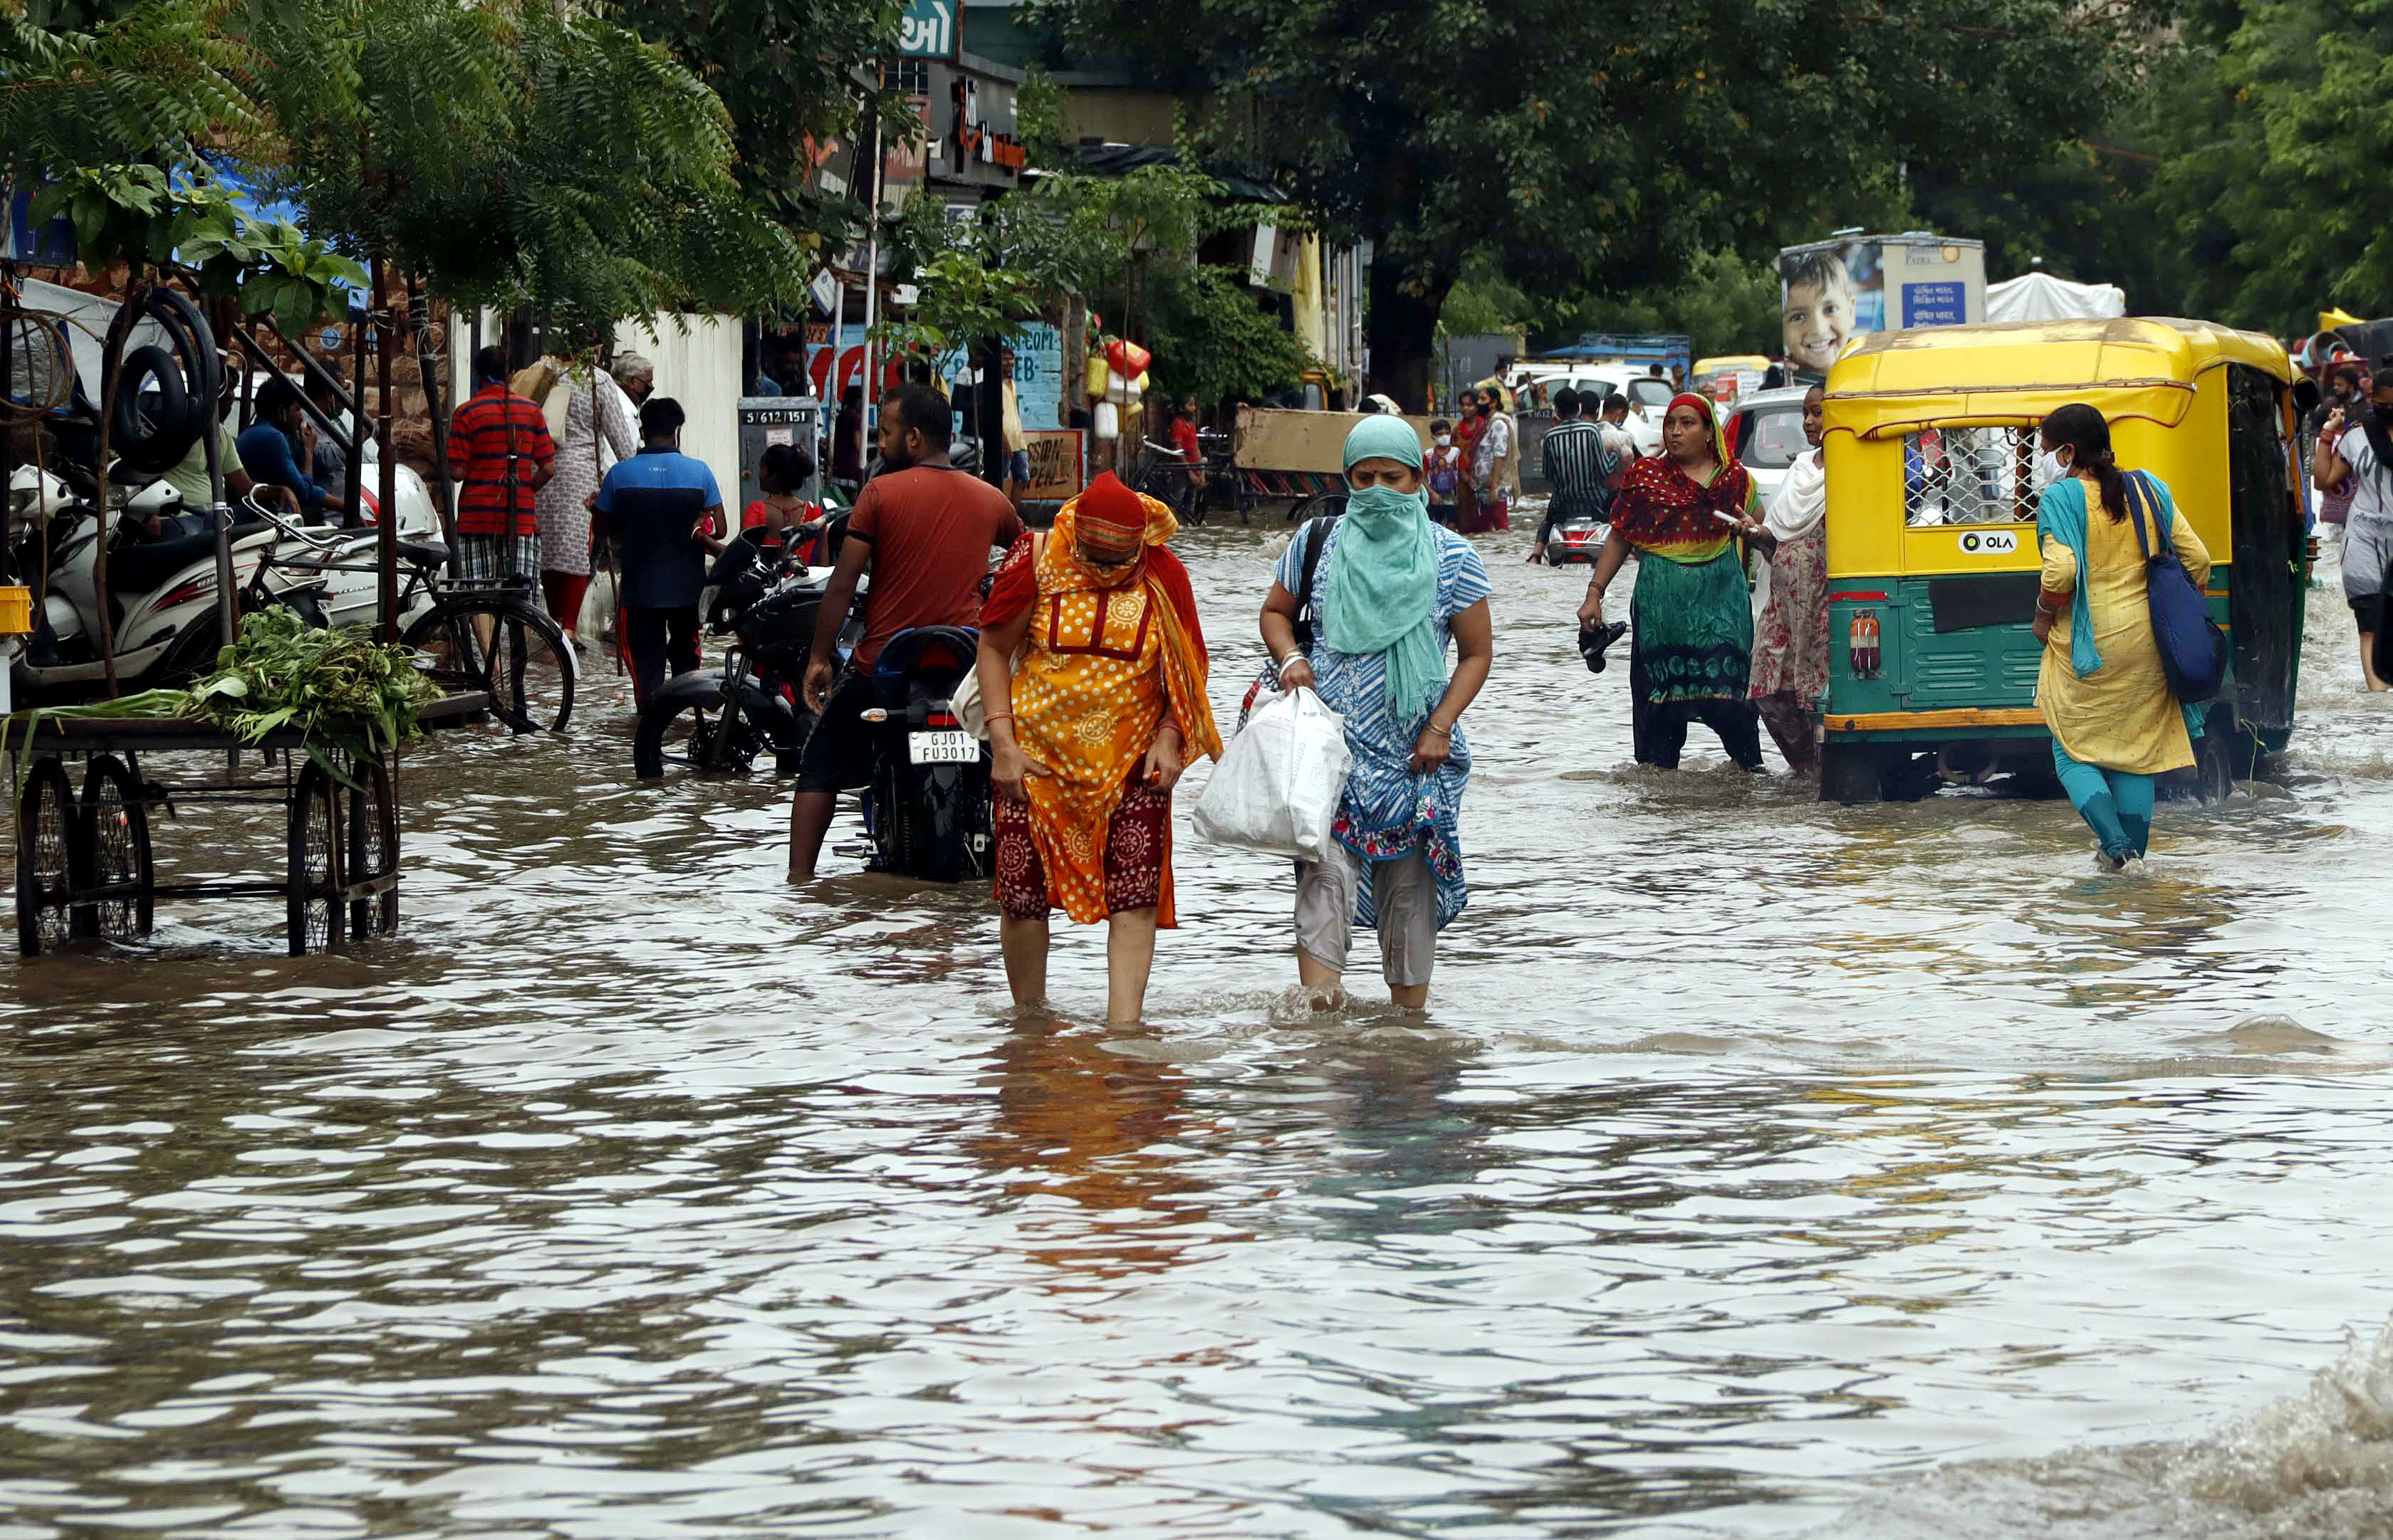 People wade through a flooded street after heavy rain in Ahmedabad on Friday.